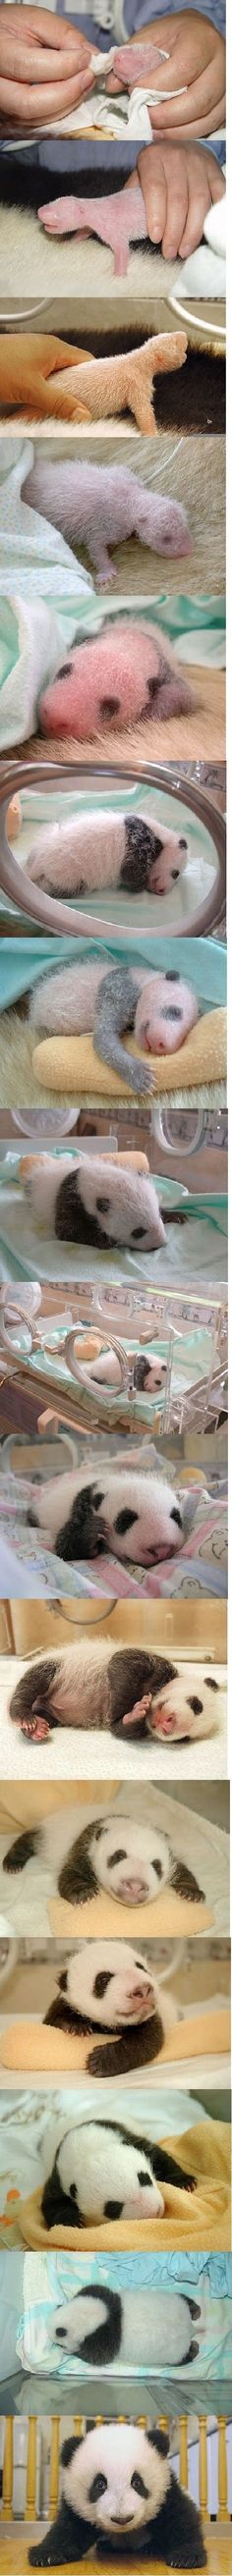 Panda-This will be Bailey's job someday! I will come help on take your mother to work day!